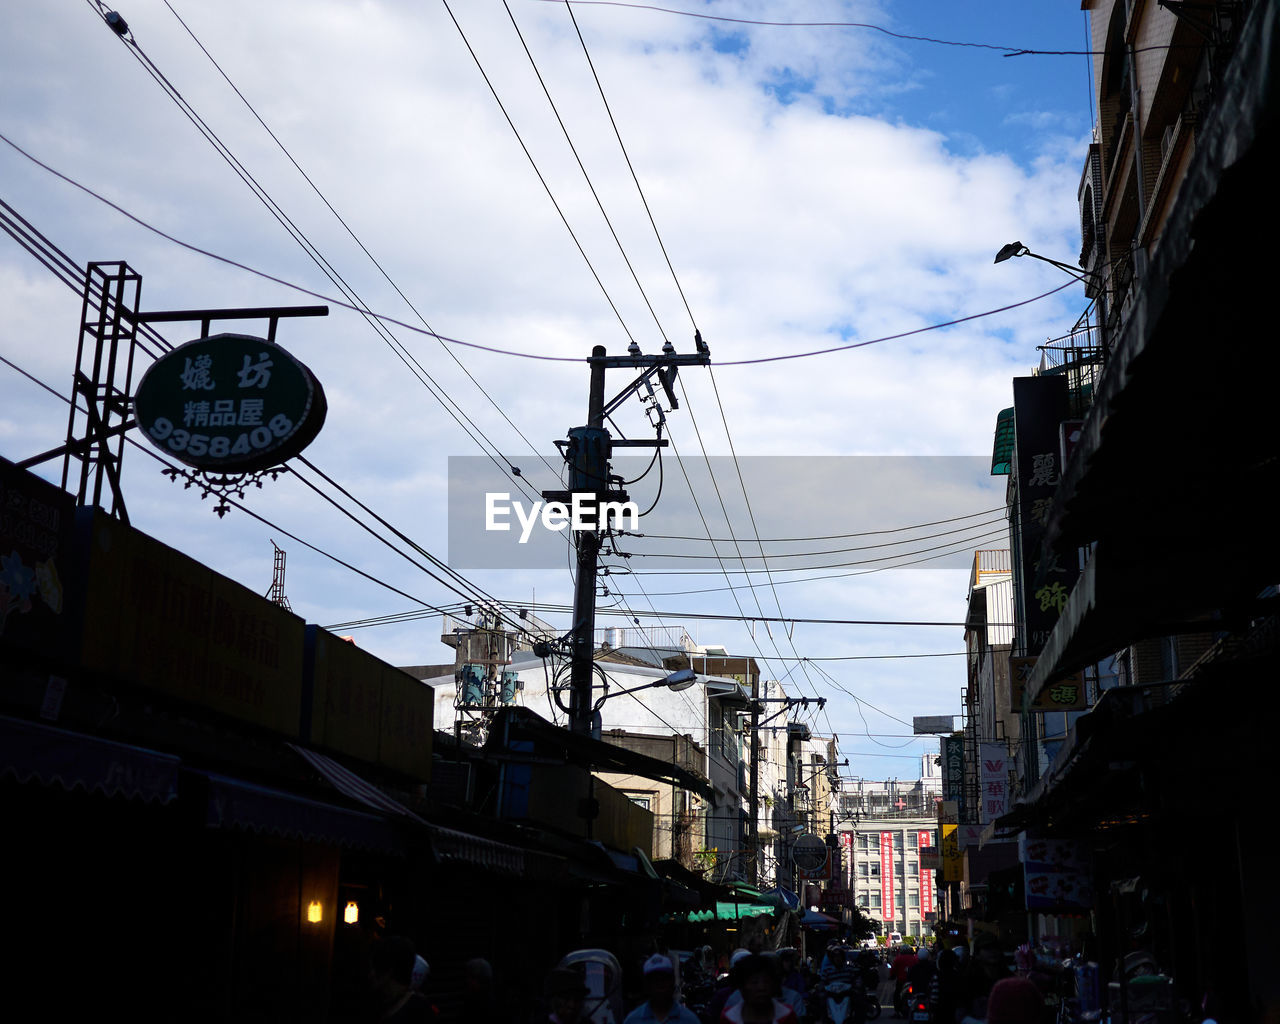 sky, architecture, cable, built structure, building exterior, city, low angle view, cloud - sky, electricity, connection, street, transportation, power line, nature, mode of transportation, technology, group of people, incidental people, outdoors, communication, power supply, light, complexity